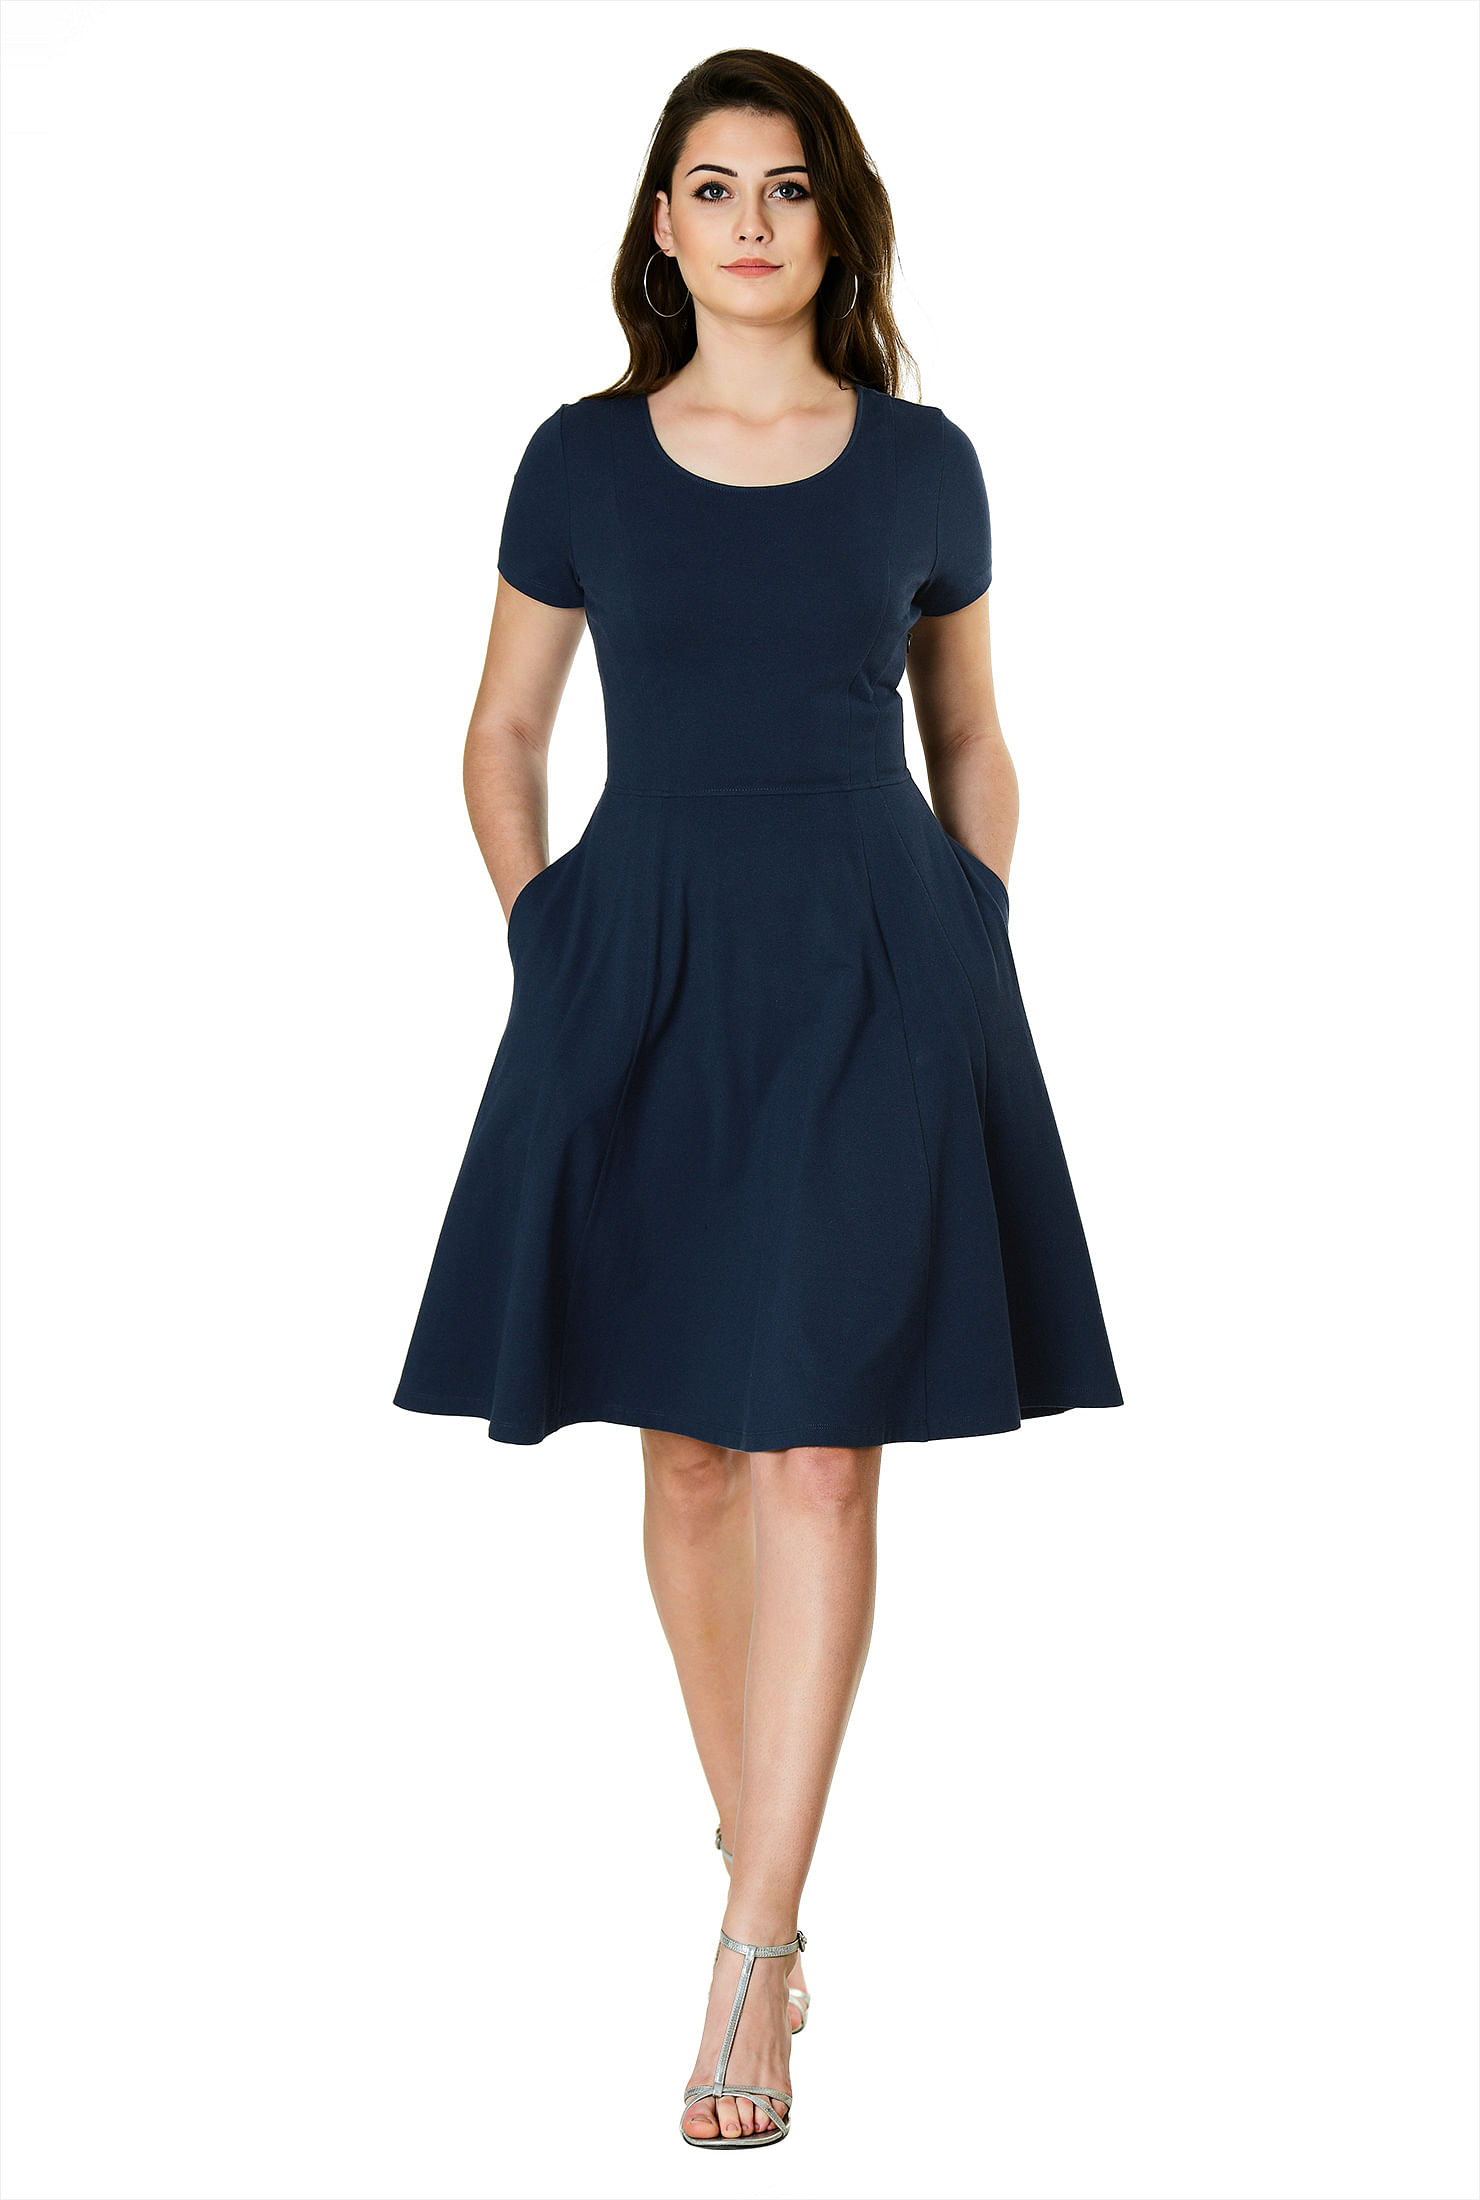 16ca756836b8 cotton/spandex Dresses, Deep Navy Dresses, Fit and flare dresses, jersey